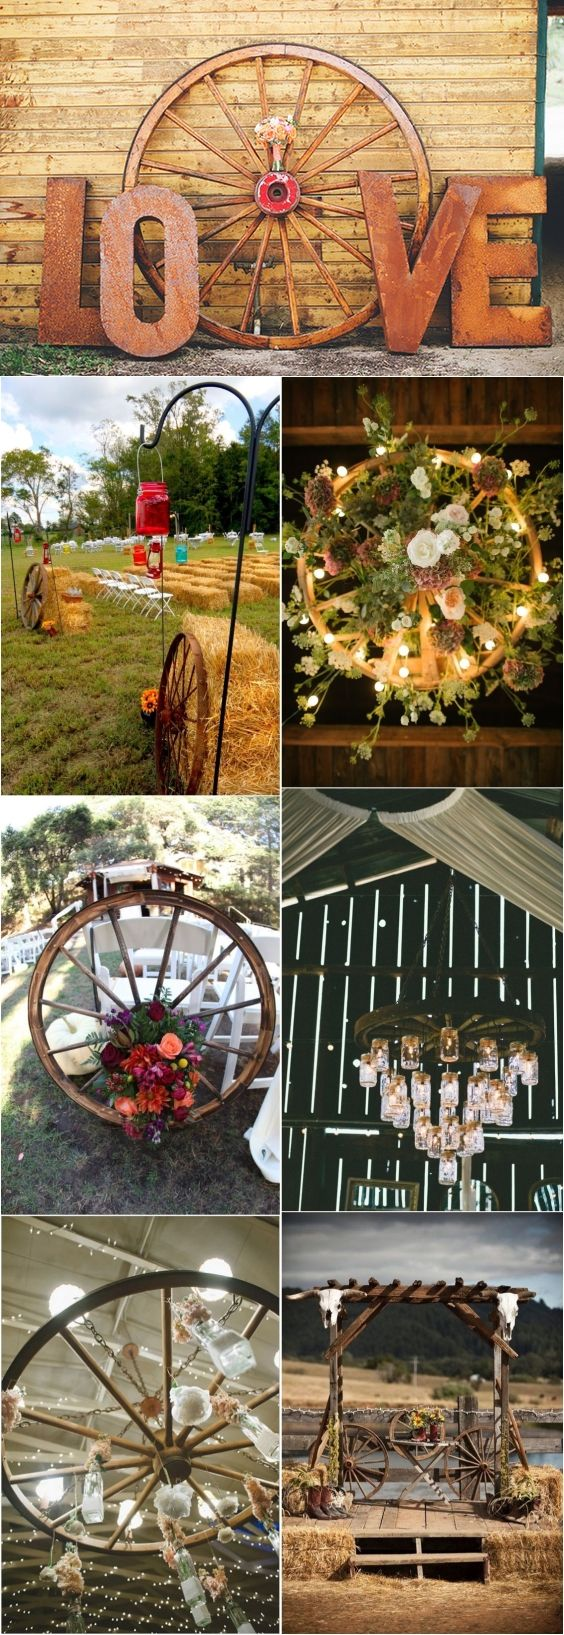 Wedding ideas rustic theme   best Hannah rustic wedding images on Pinterest  Wedding ideas